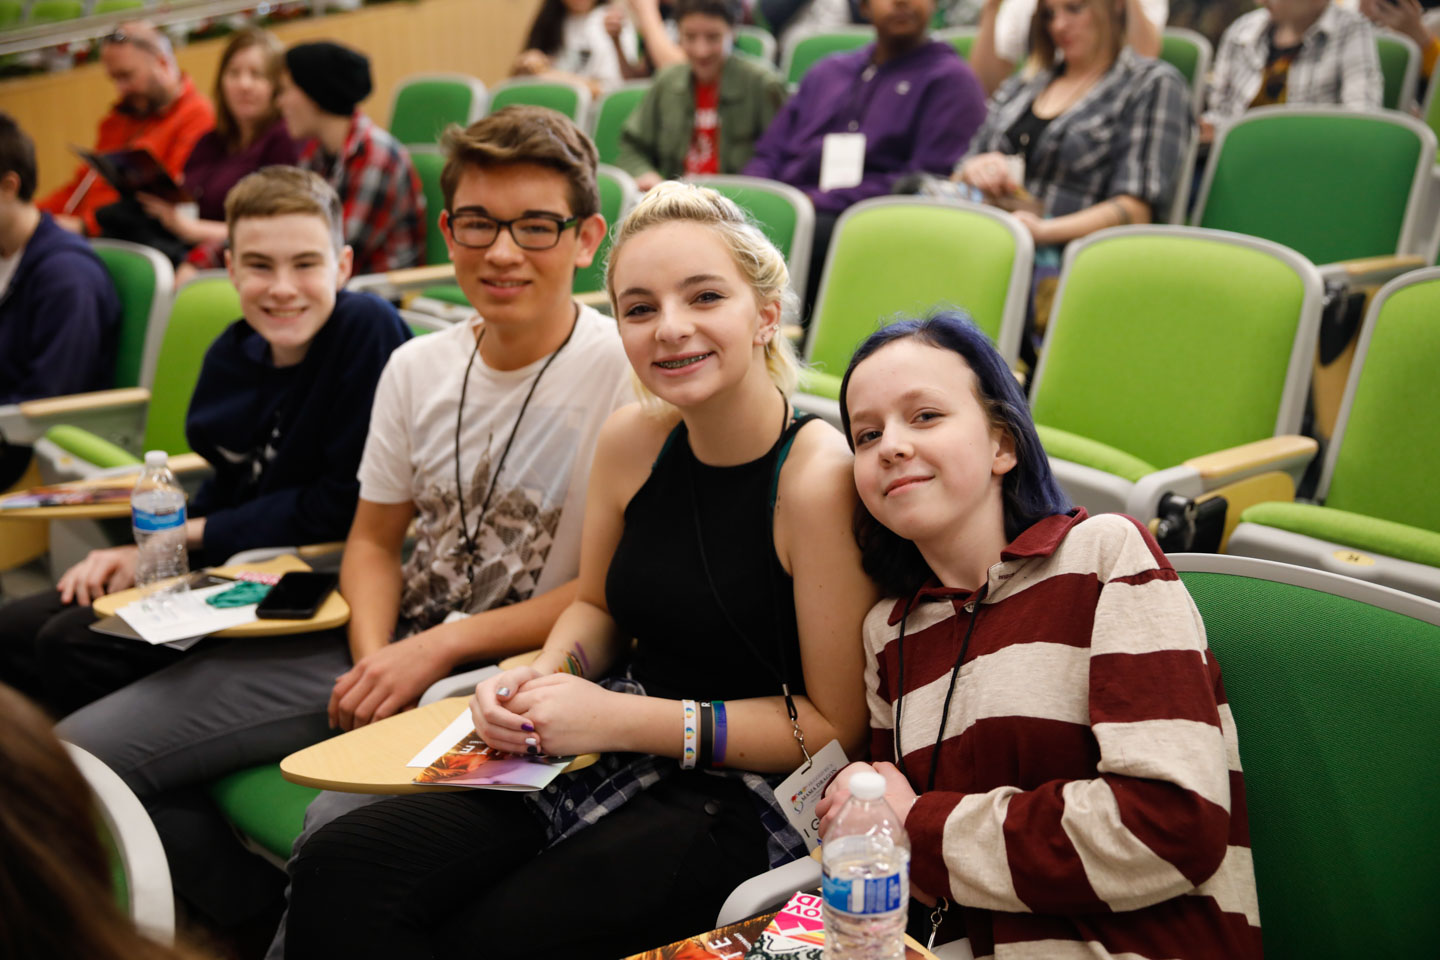 Ignite is a conference for LGBT youth in Utah County